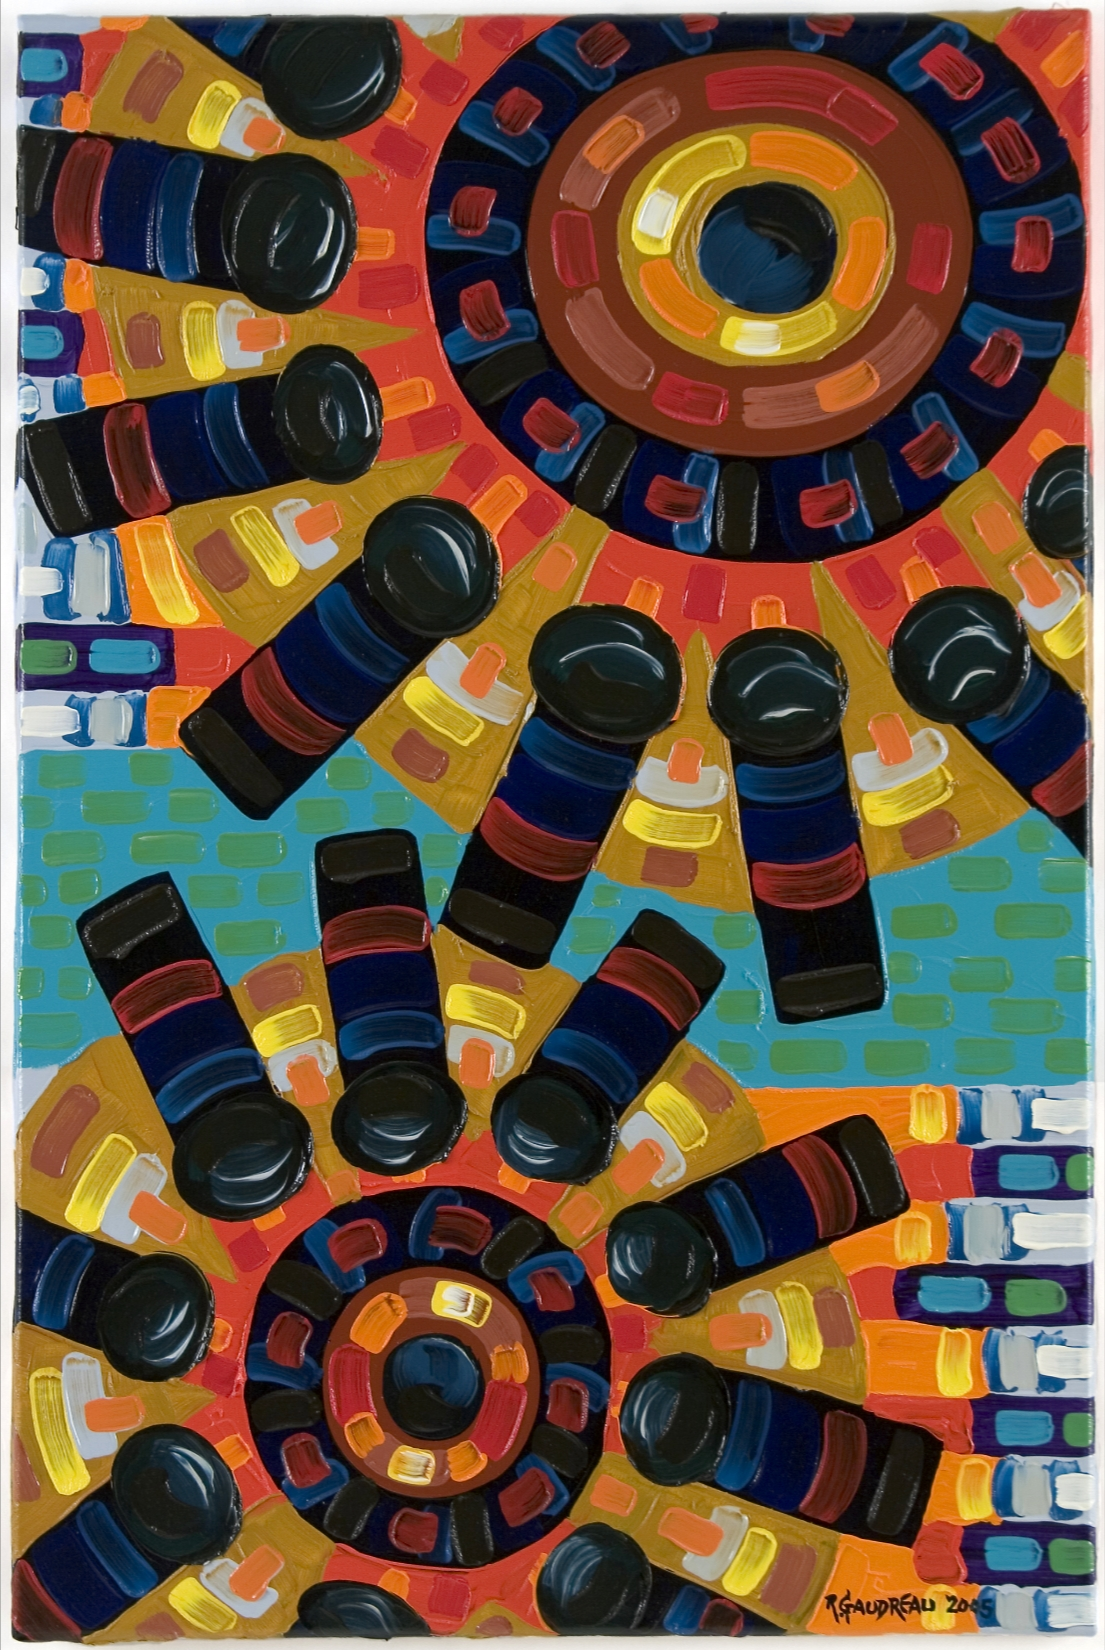 Gears2005 oil on linen 36 x 24 inches